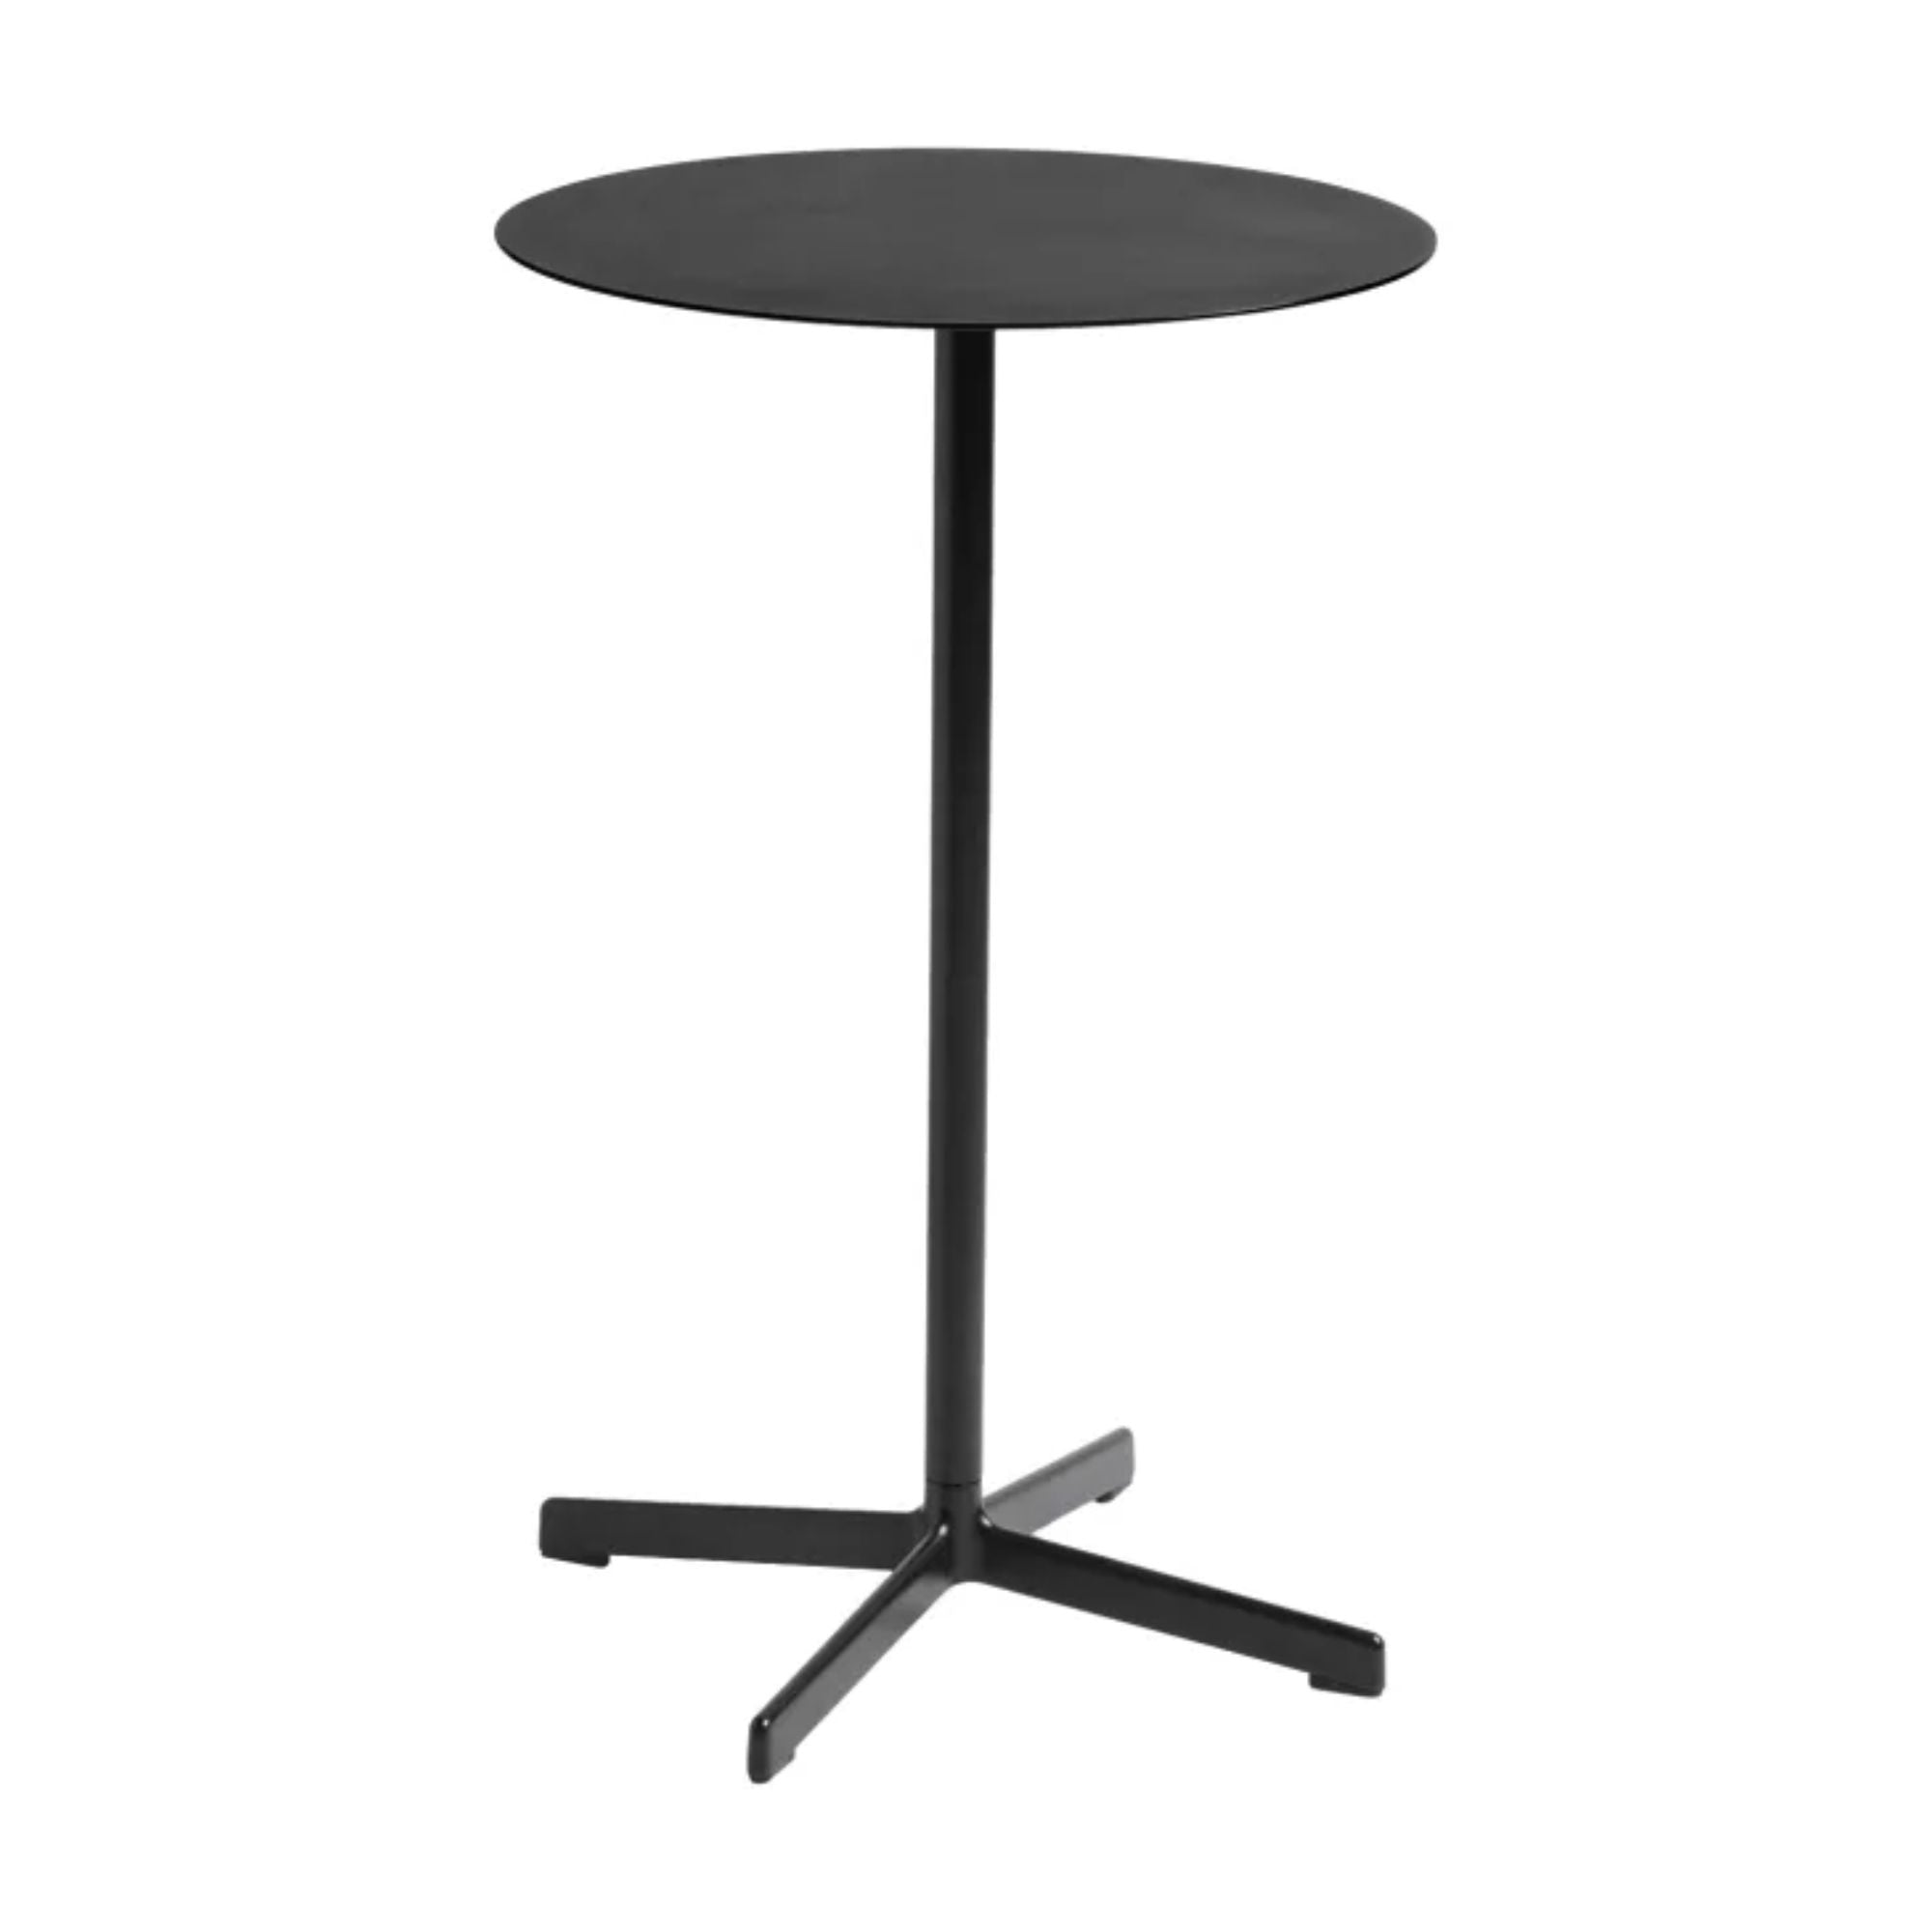 Hay Neu Table High Round D60xH95cm , Anthracite